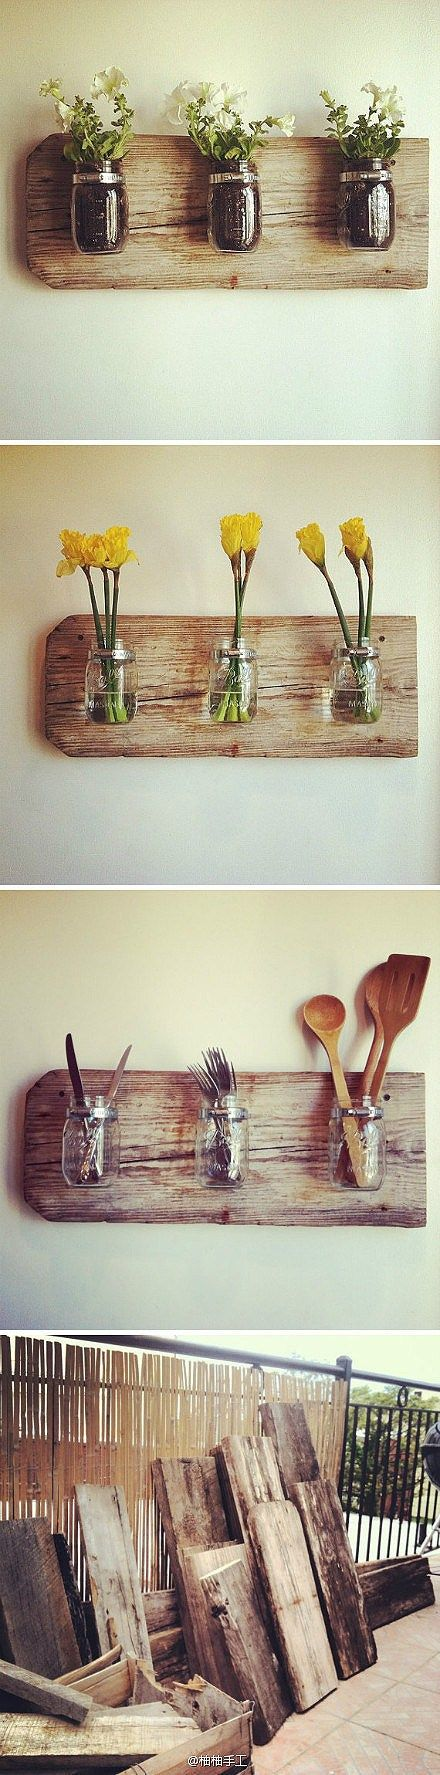 What To Do With Reclaimed Wood   Kerry Angelos - Interior Ideas   Decorative and Functional Hanging Storage